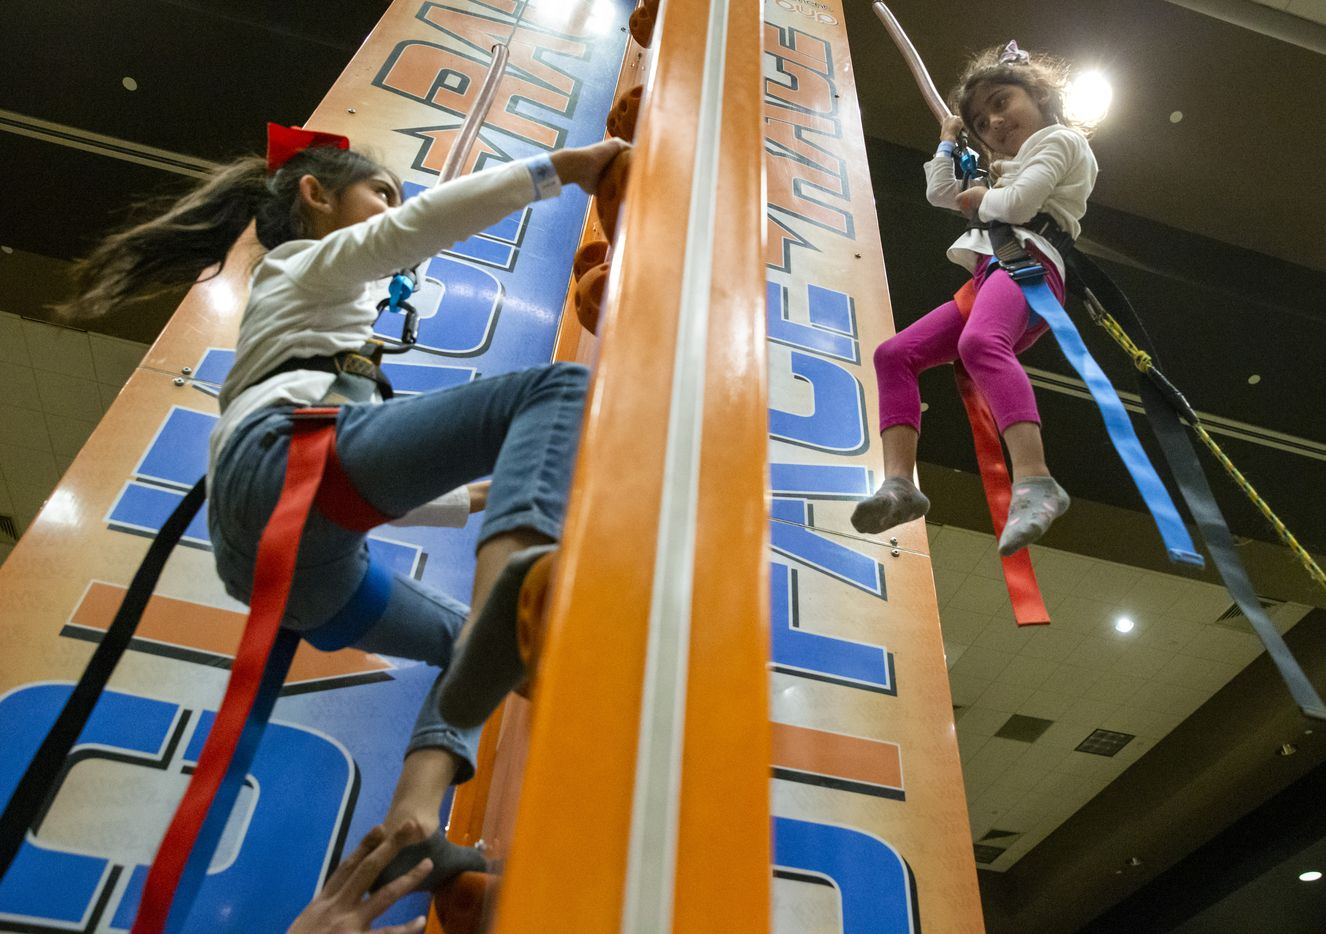 Zanaib Qureshi from Midland, Texas, (right), 4, looks at her sister Jannat, 6, as they climb the rock climbing attraction at the Day 1 Dallas festival held this year at the Embassy Suites Conference Center in Frisco, Texas, on Wednesday, Jan. 1, 2020. Day 1 Dallas is a kid-friendly New Year's Day festival that features rock-climbing, arts and crafts, bounce houses, and a fireworks show.